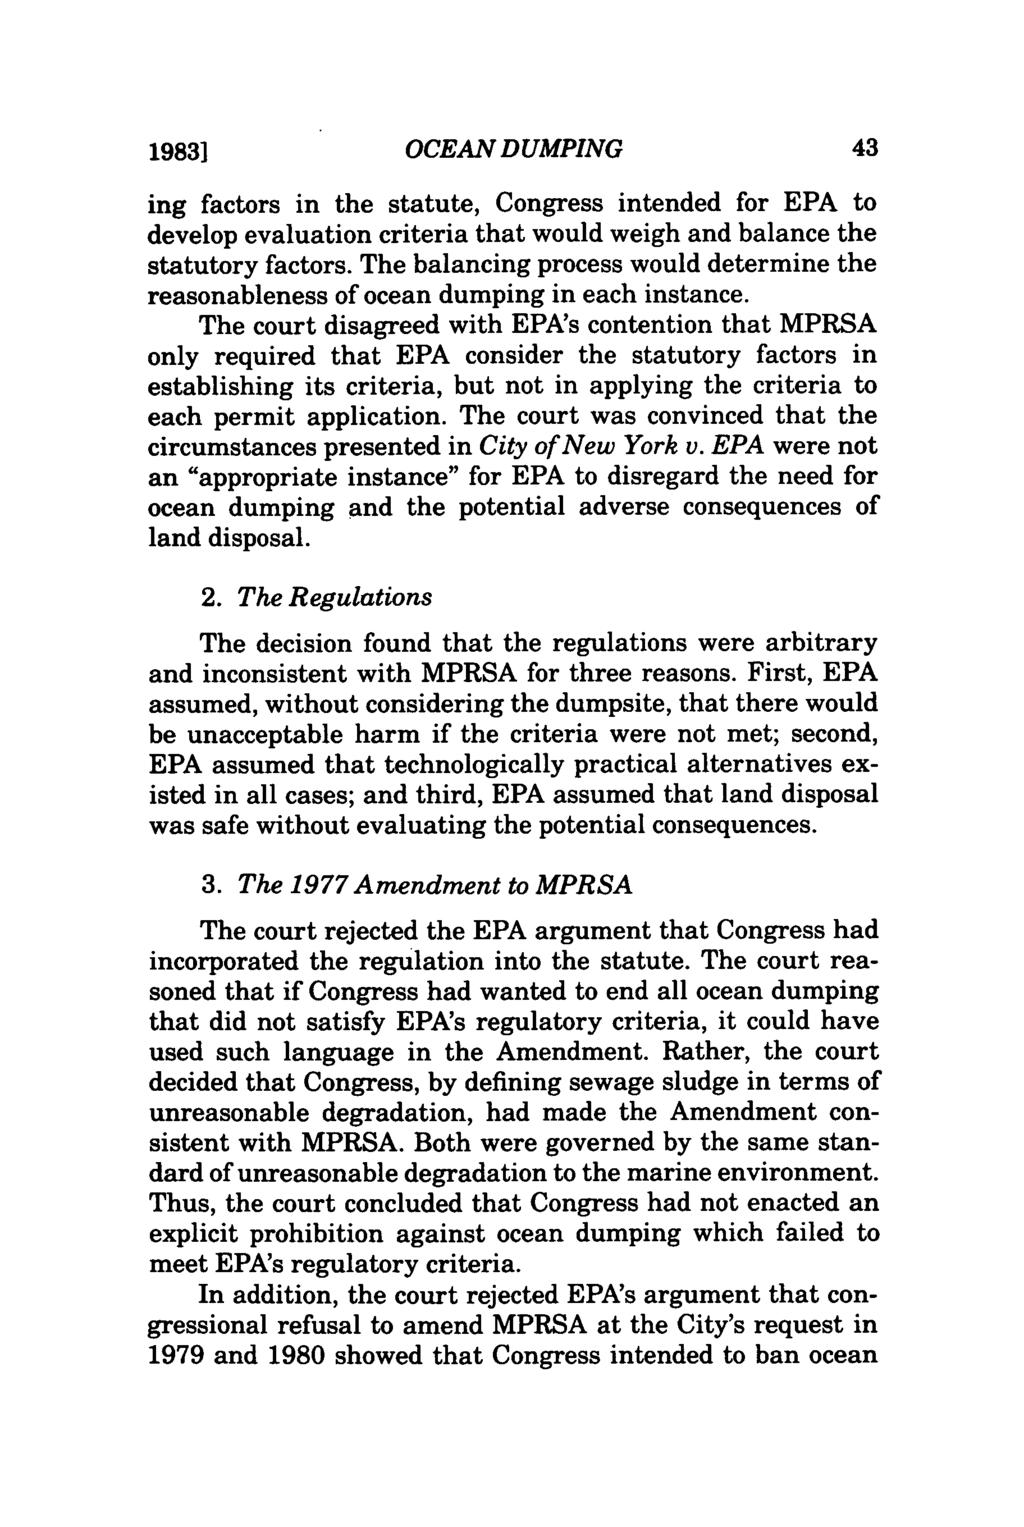 1983] OCEAN DUMPING ing factors in the statute, Congress intended for EPA to develop evaluation criteria that would weigh and balance the statutory factors.